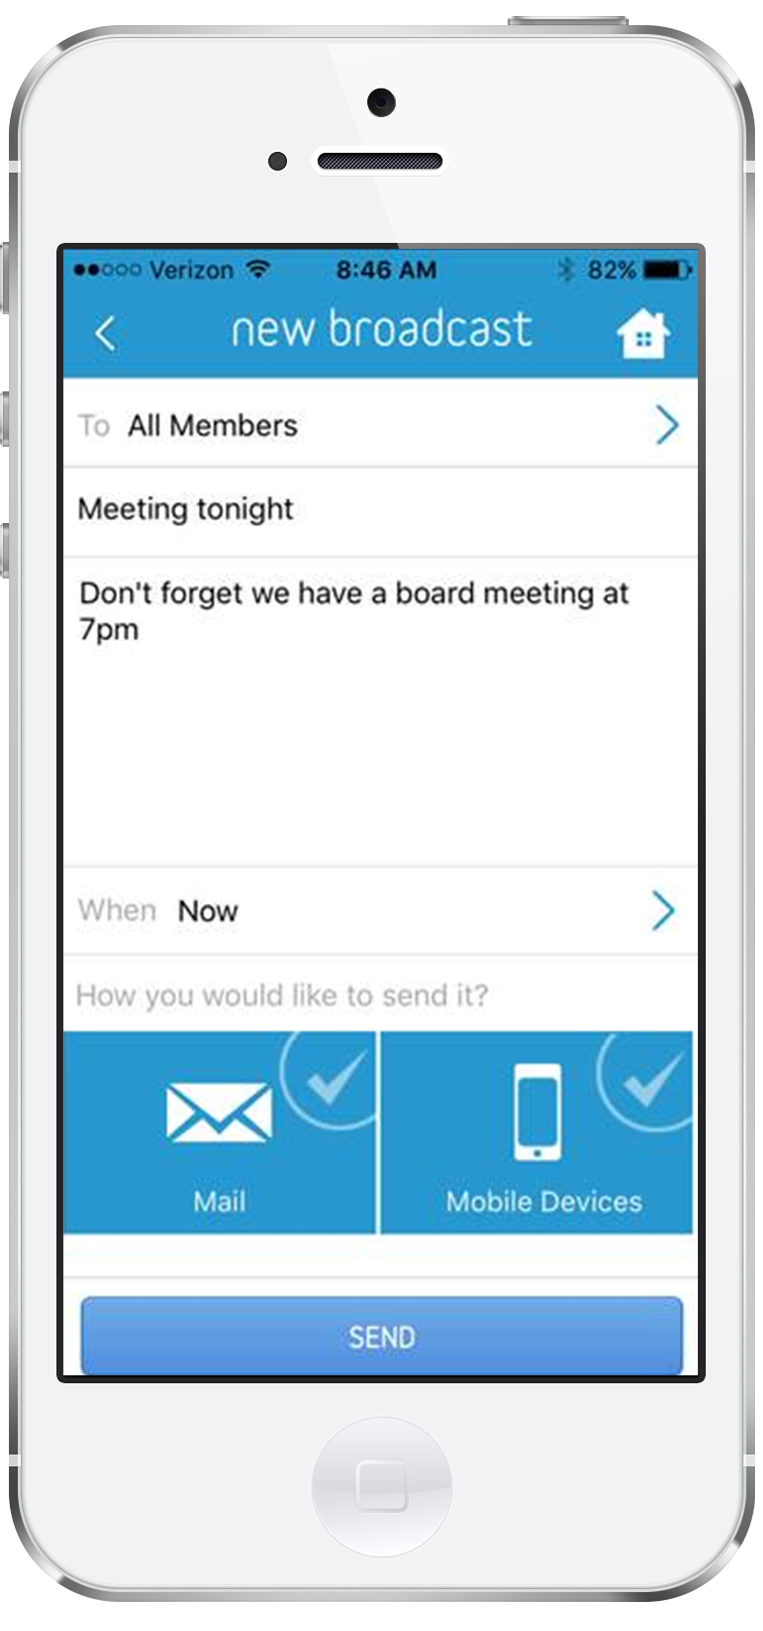 memberplanet allows admins to create & send broadcasts by email or SMS message